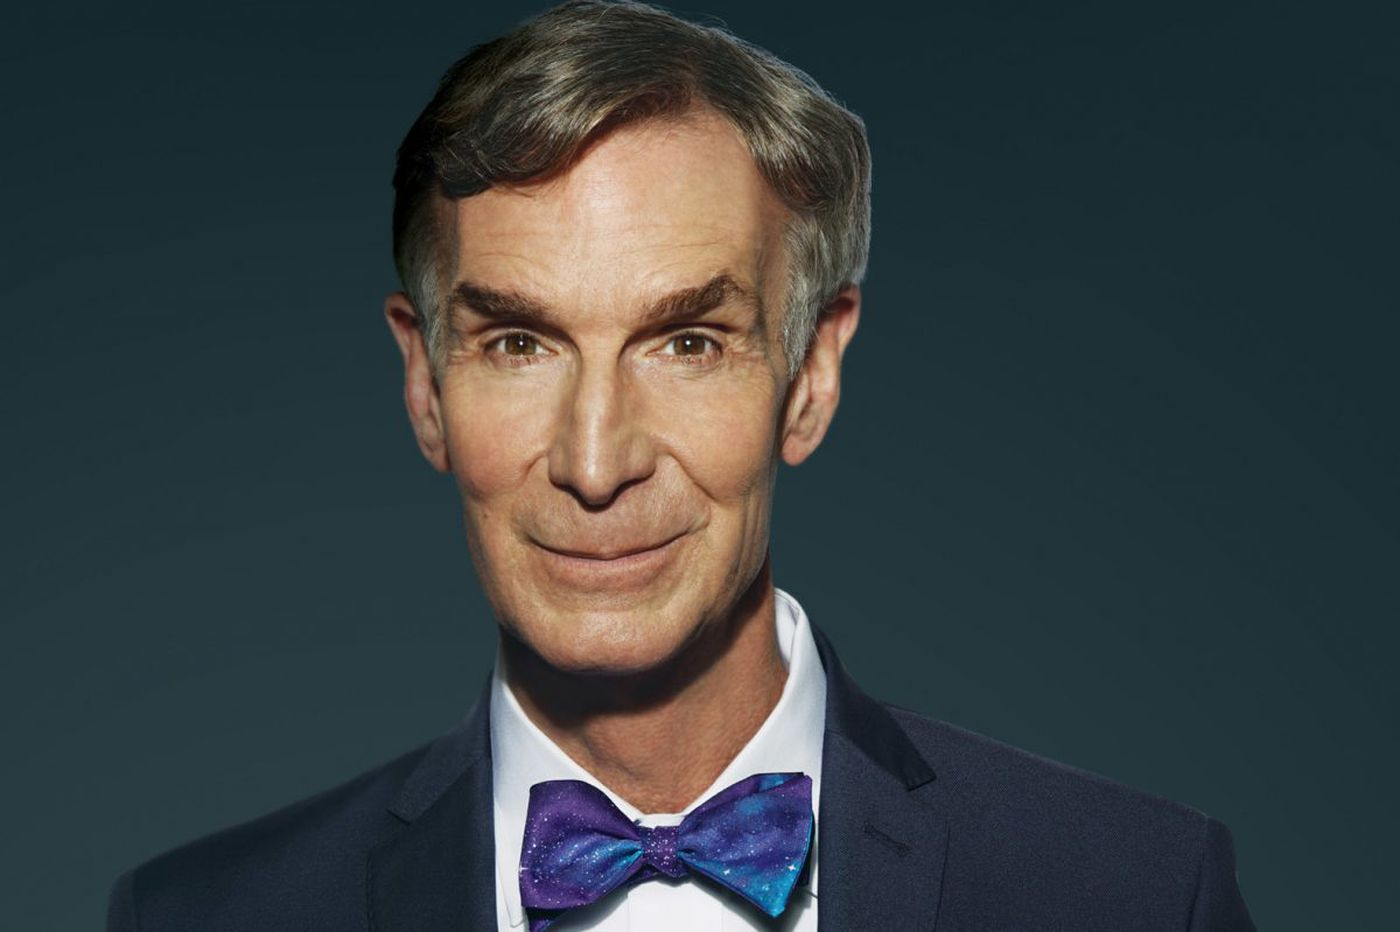 'Bill Nye: Science Guy': The rocky road of a science advocate